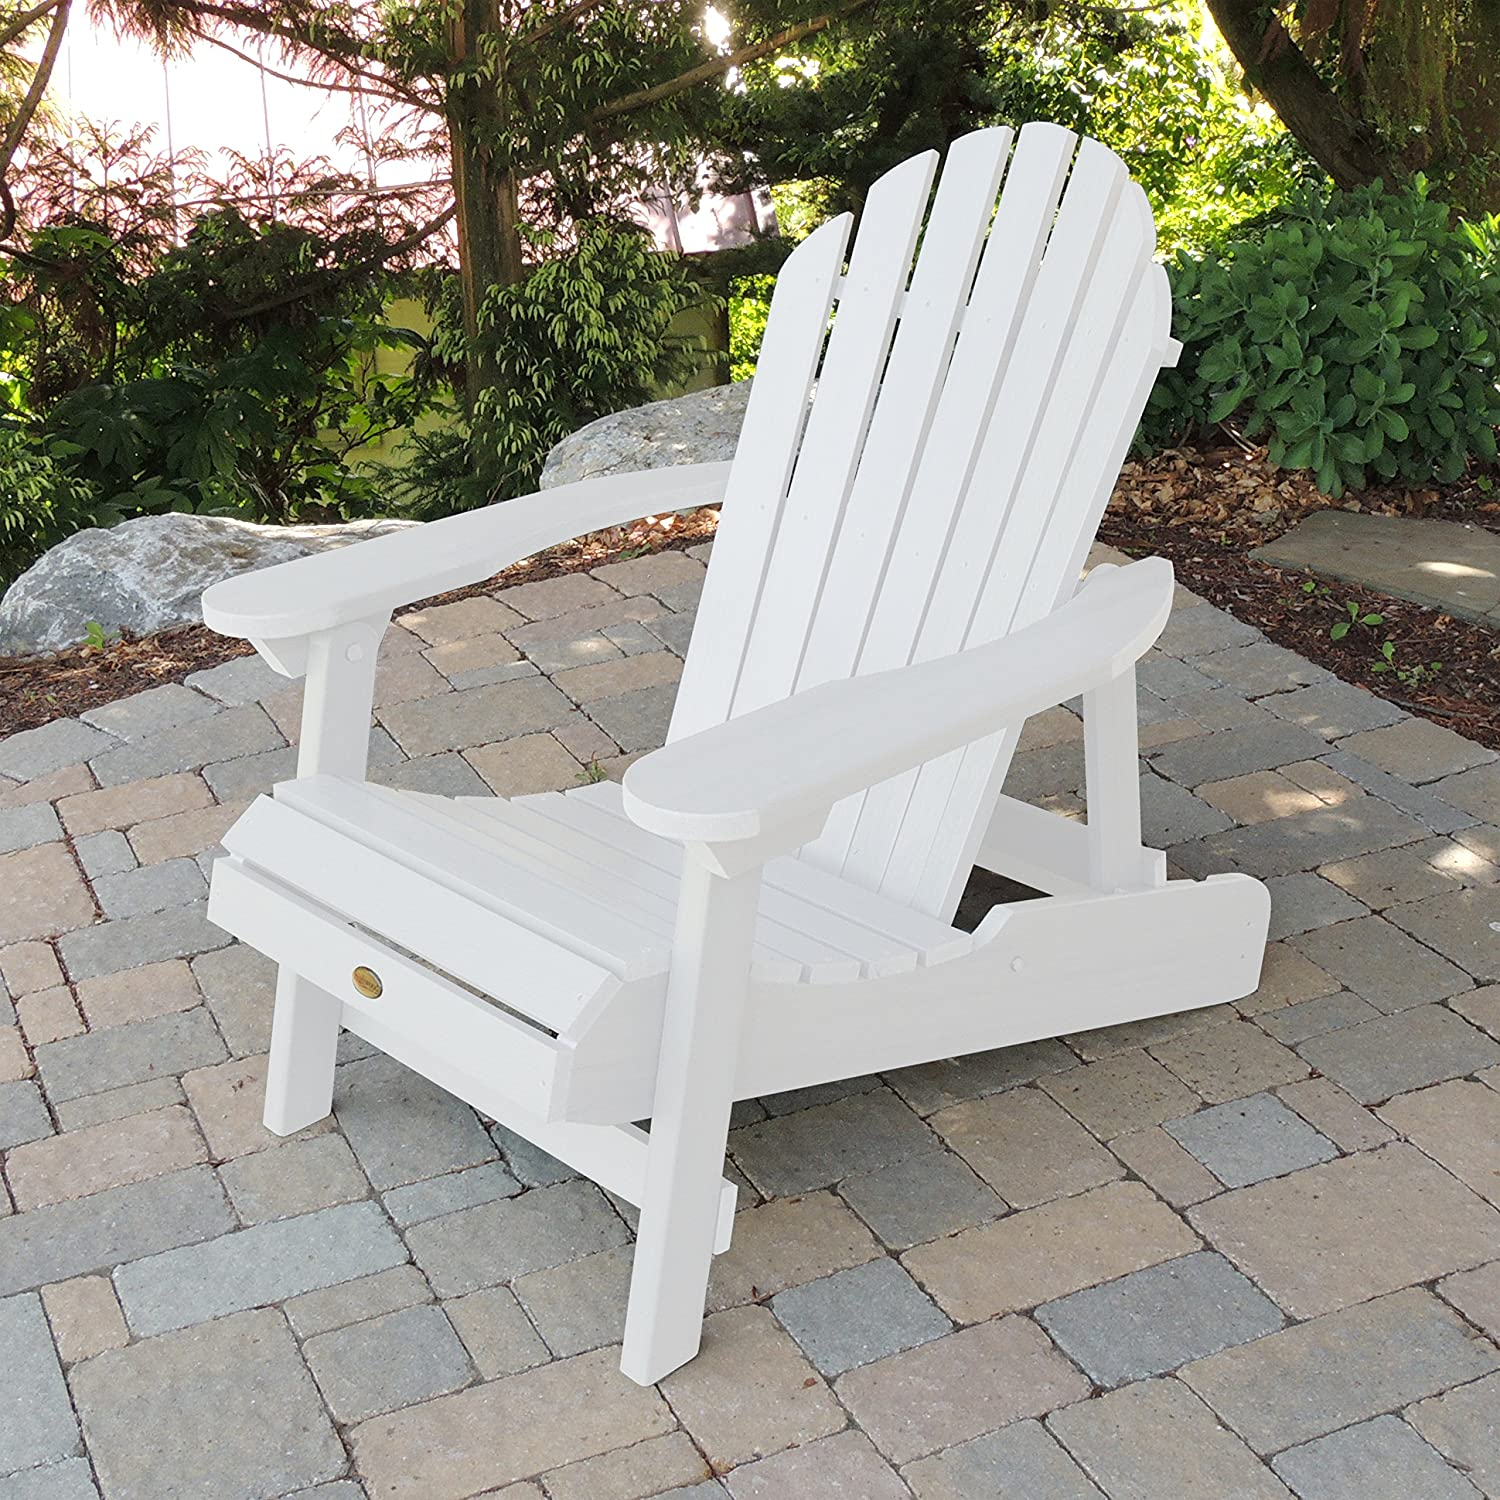 Highwood Folding and Reclining Adult Adirondack Chair White